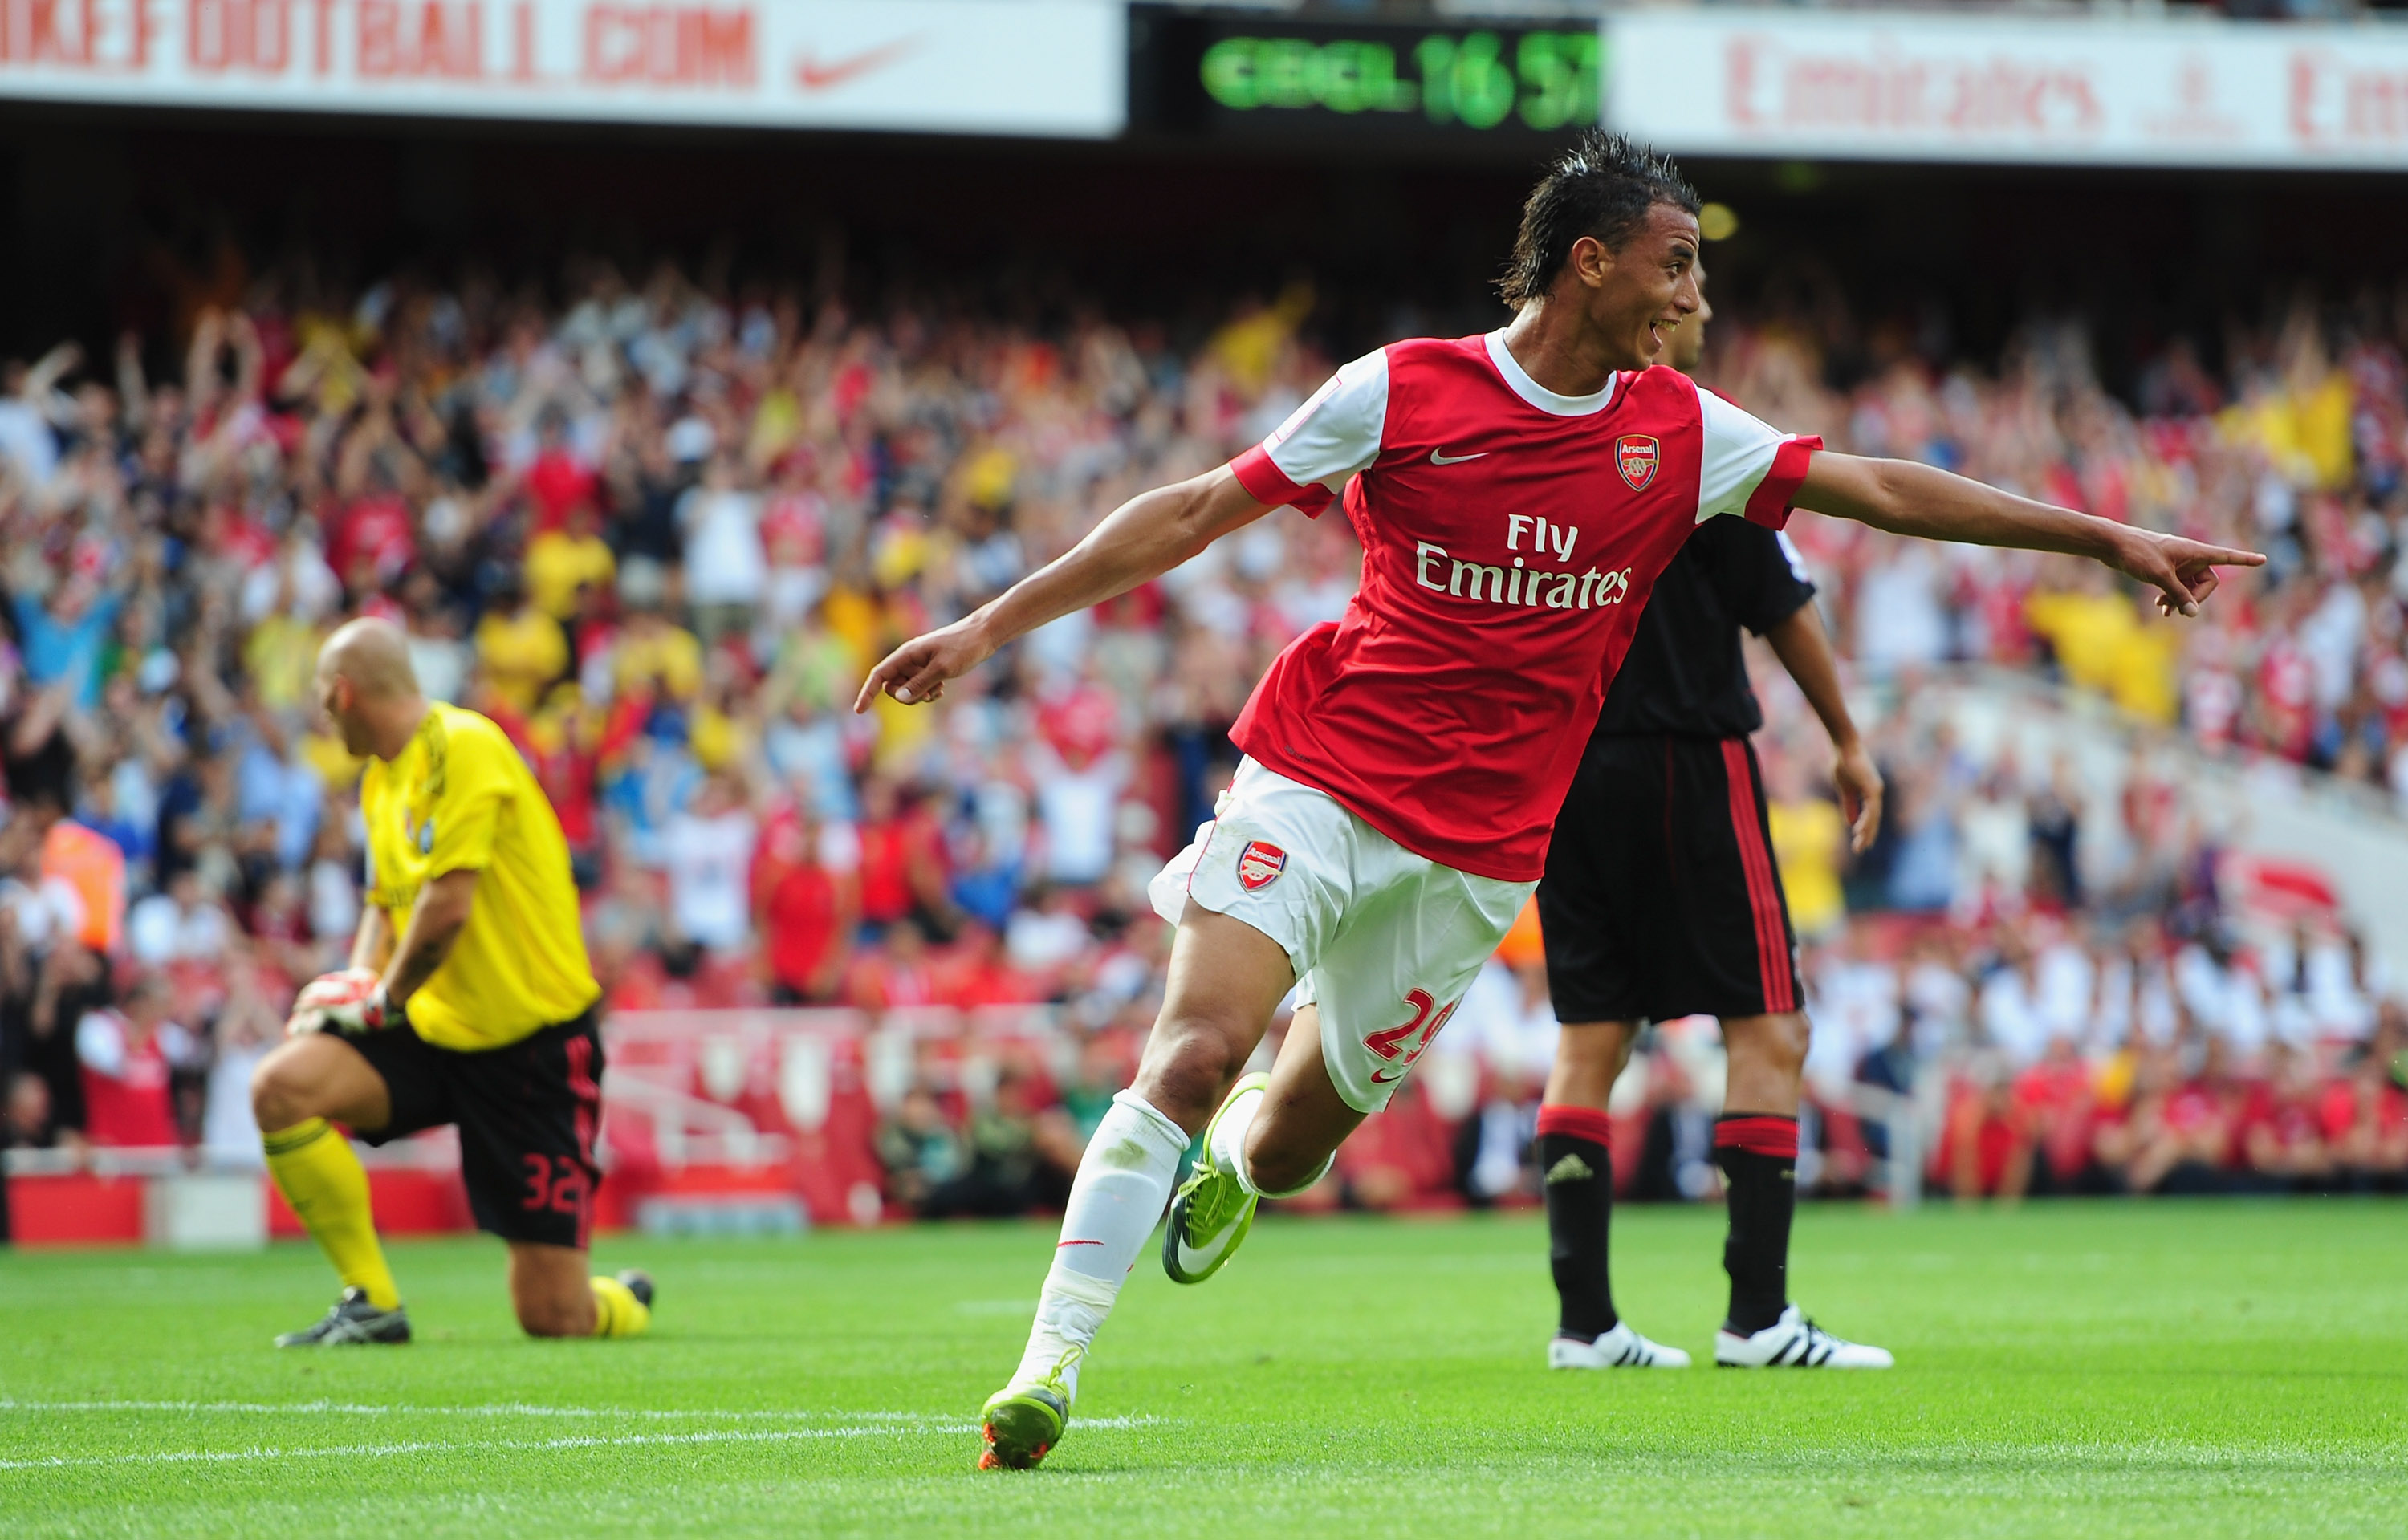 LONDON, ENGLAND - JULY 31:  Marouane Chamakh of Arsenal celebrates after scoring during the Emirates Cup match between Arsenal and AC Milan at Emirates Stadium on July 31, 2010 in London, England.  (Photo by Mike Hewitt/Getty Images)